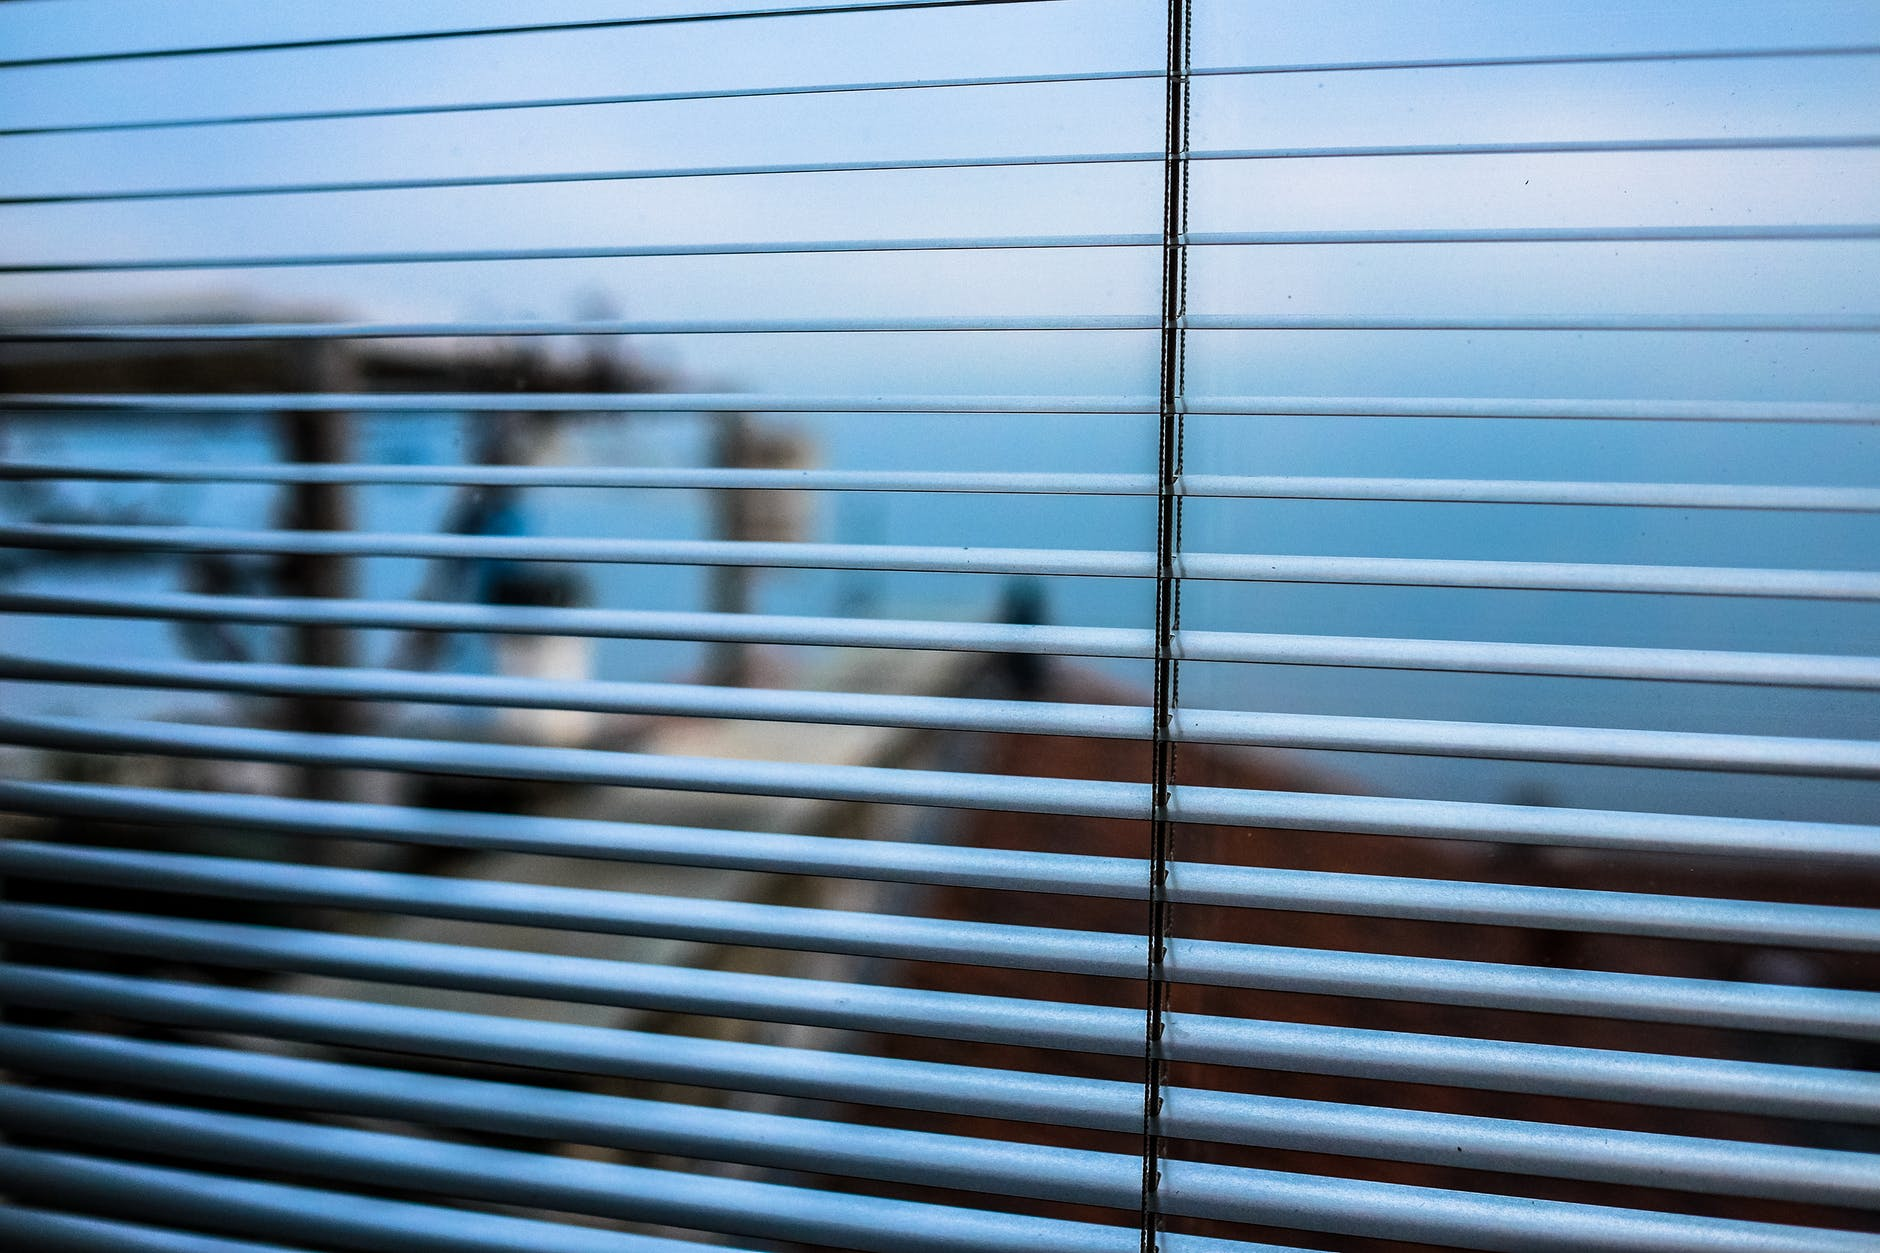 Extra Large Blinds - Apt For Modern Apartments